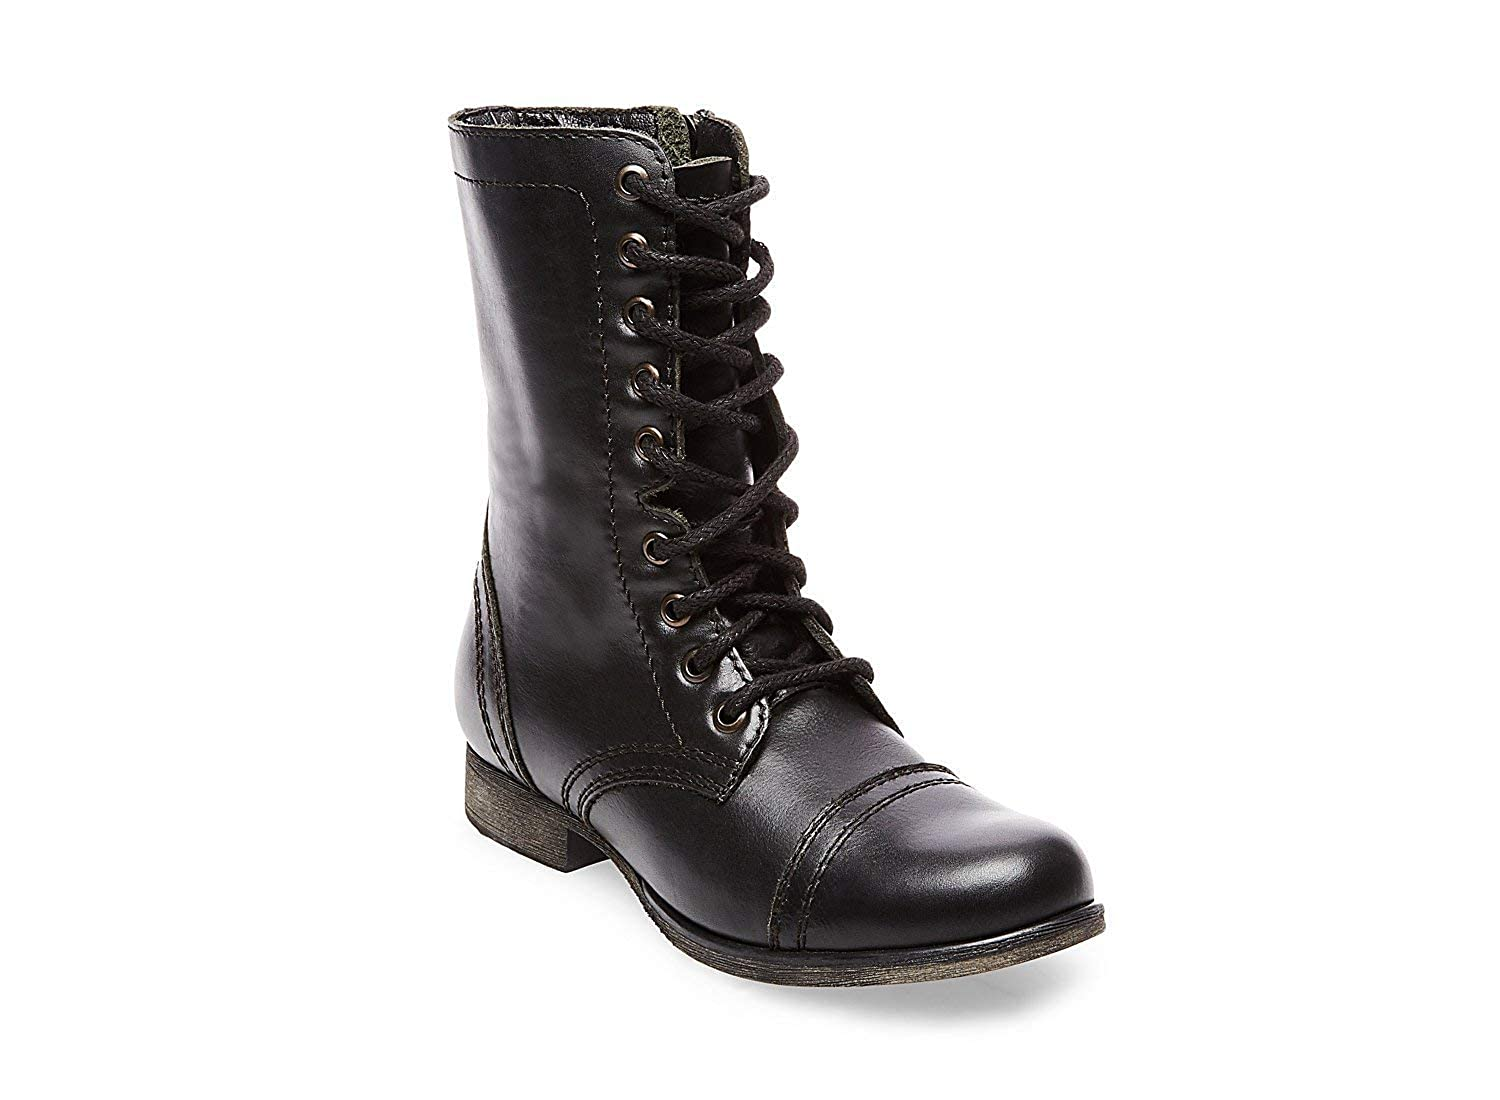 1a47bbaf48b Steve Madden Women's Troopa Lace-Up Boot